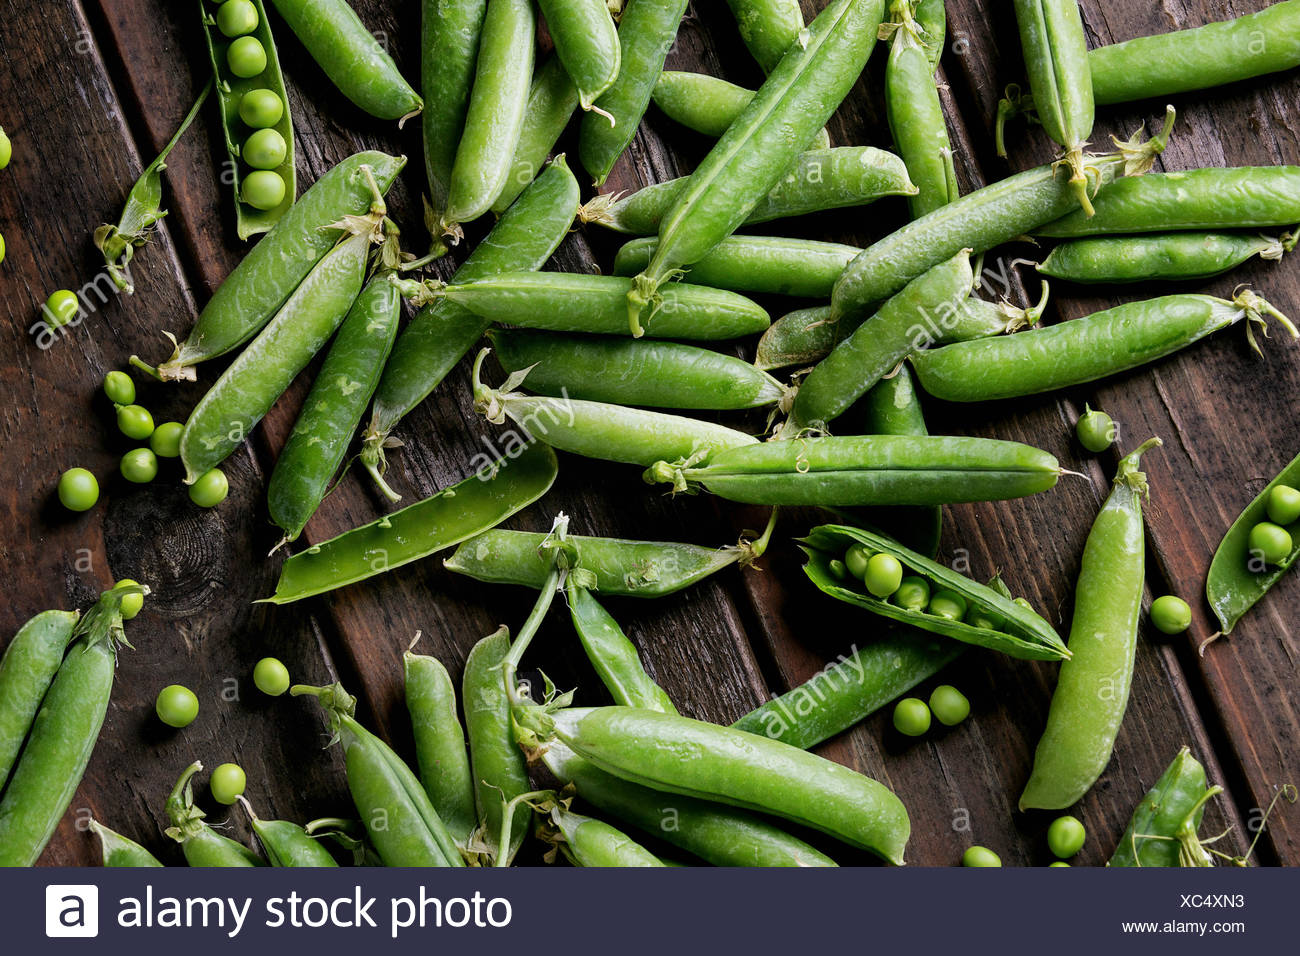 Young organic green pea pods and peas over old dark wooden planks background. Top view with space. Harvest, healthy eating. - Stock Image